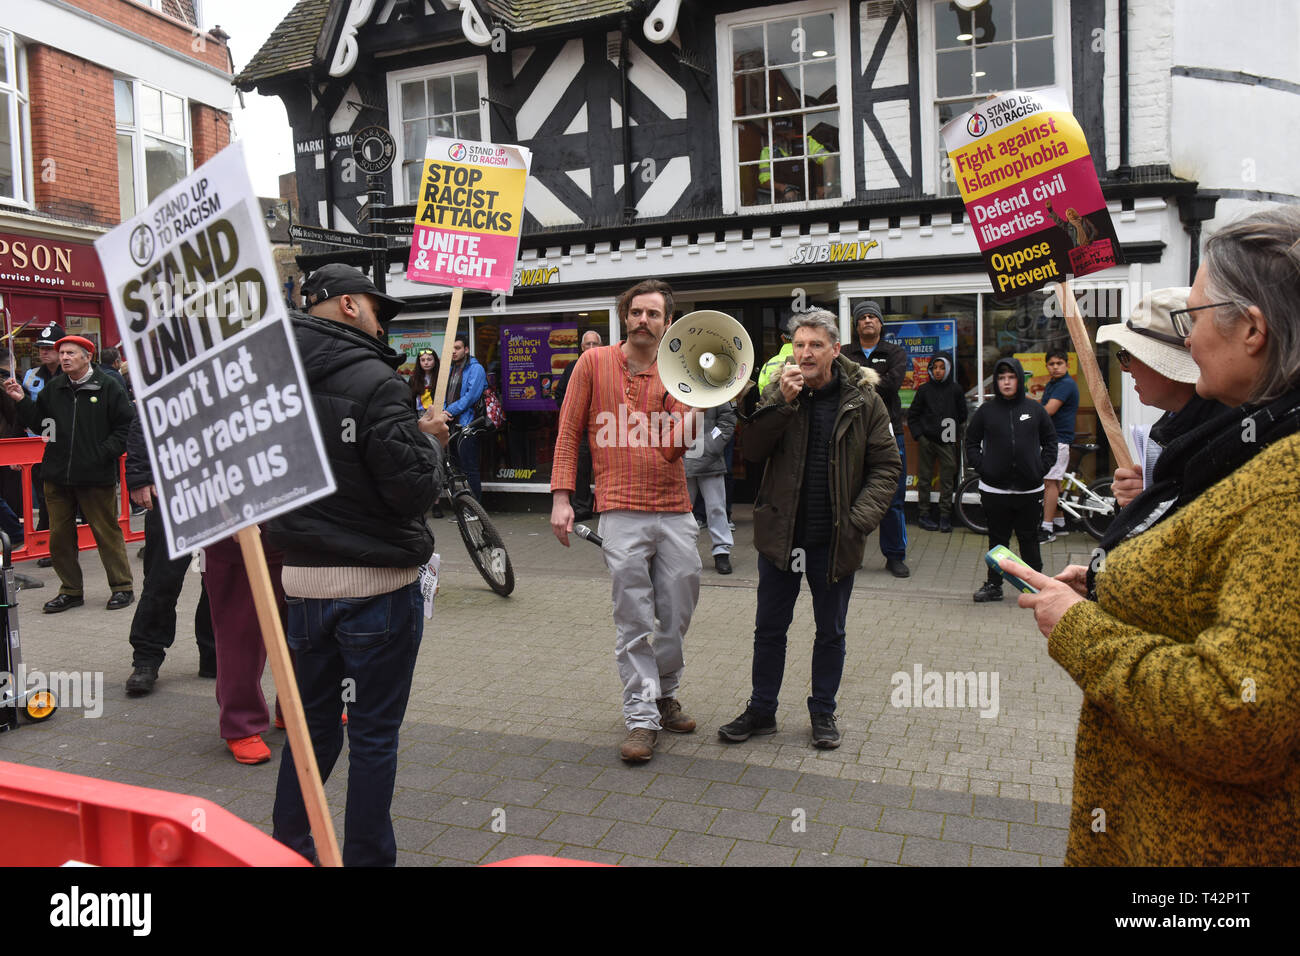 Wellington, Telford, Shropshire, UK, 13th April 2019. An anti racist counter protestors confronting The English Defence League march in Wellington, Shropshire. Credit: David Bagnall/Alamy Live News - Stock Image